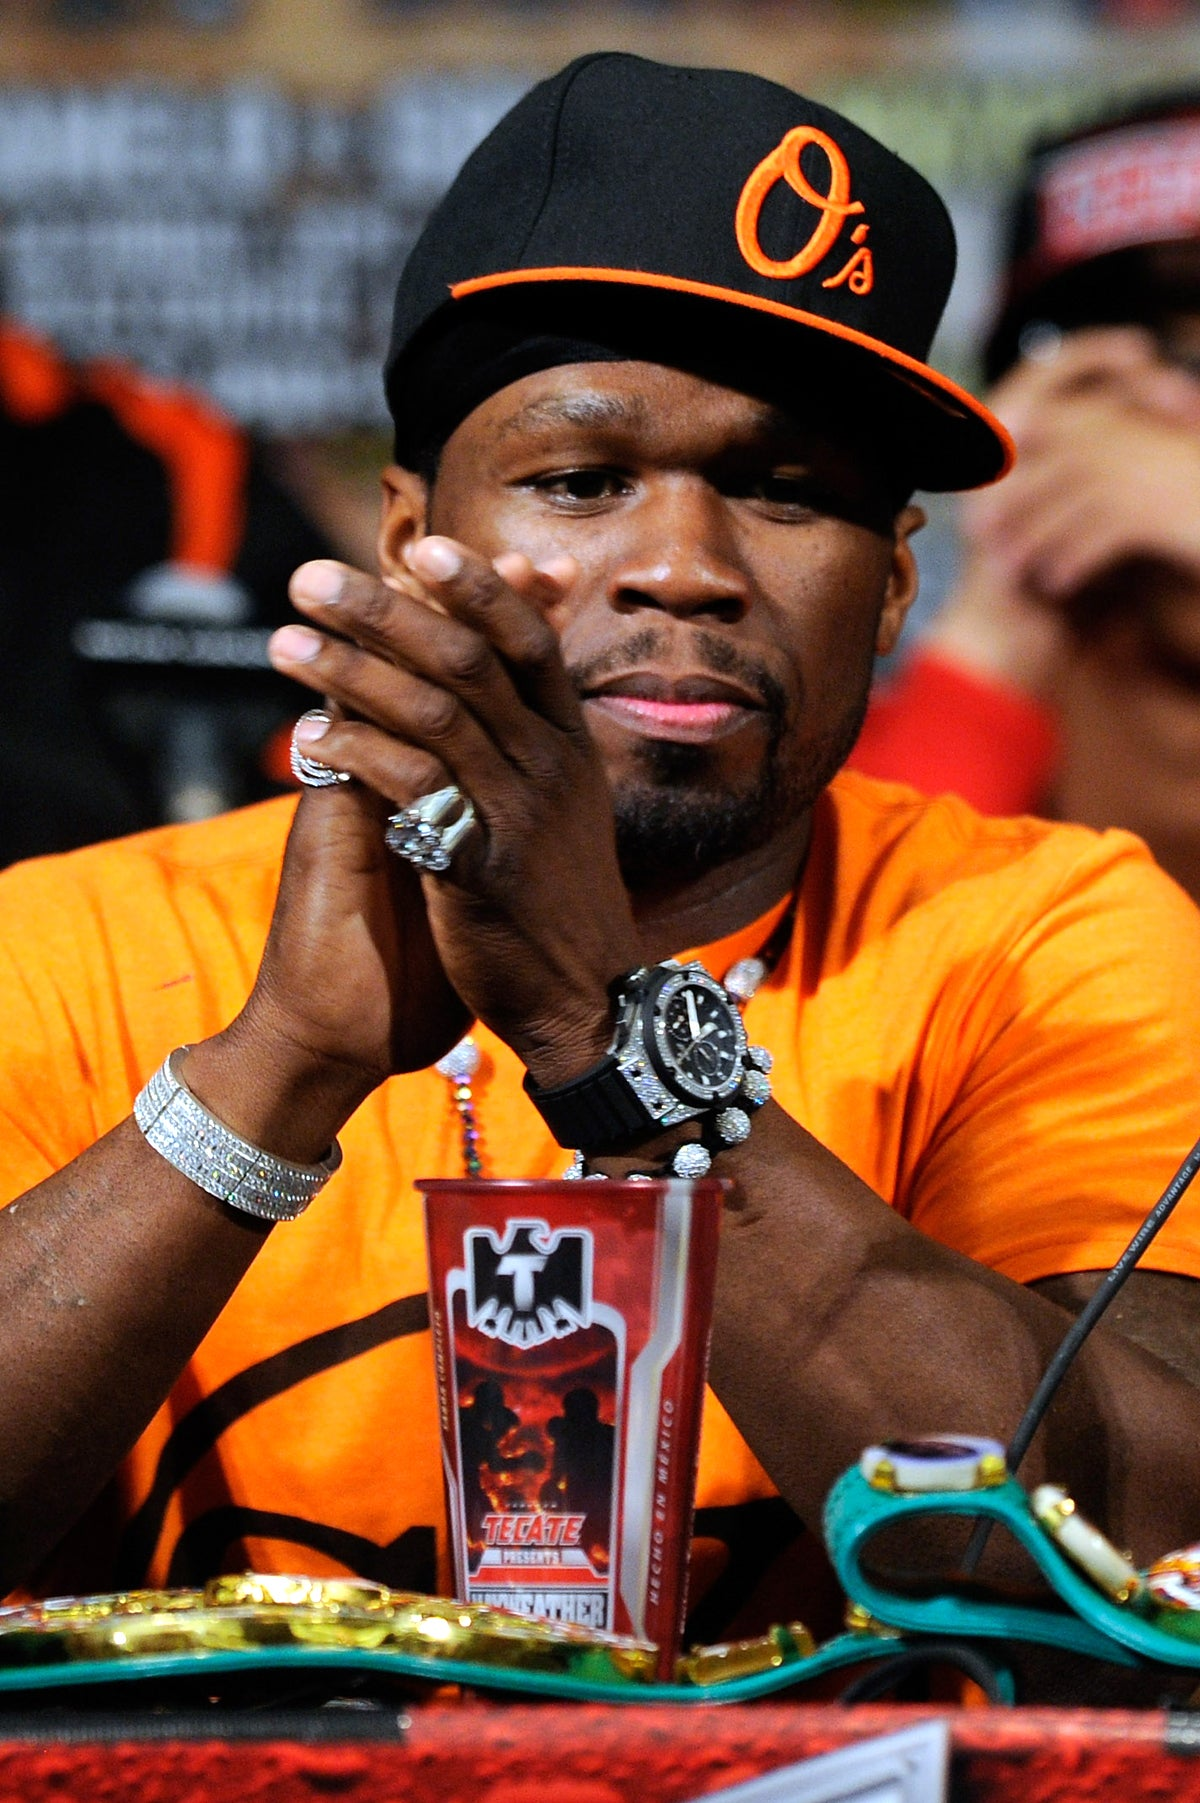 50 cent recent photo 50 Cent Latest Photos - Page 1 Just Jared